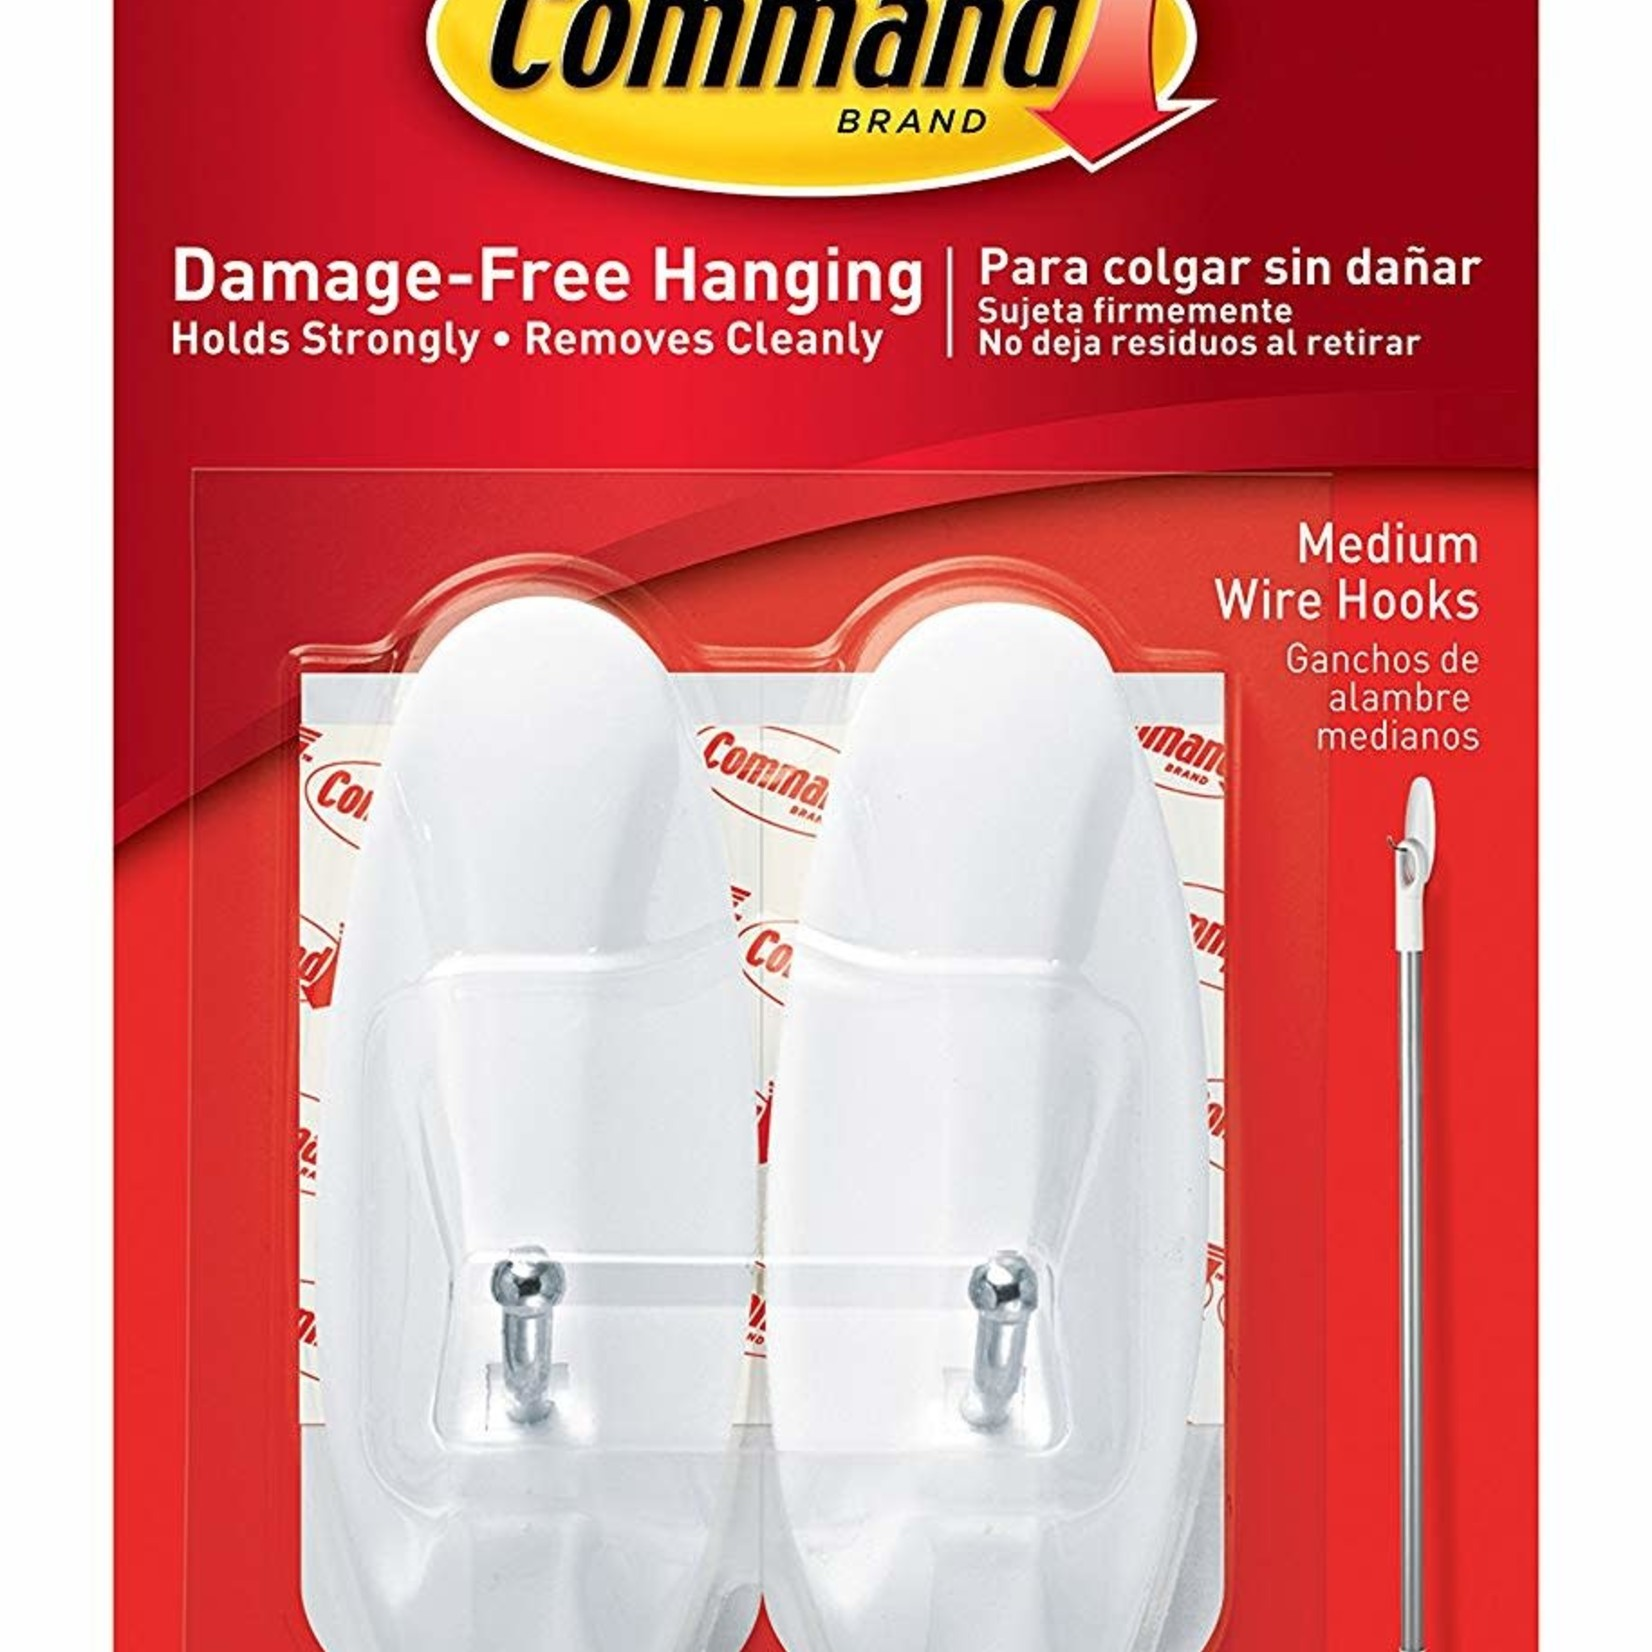 3M Command COMMAND MEDIUM WIRE HOOKS PICTURE HANGING 2 PACK